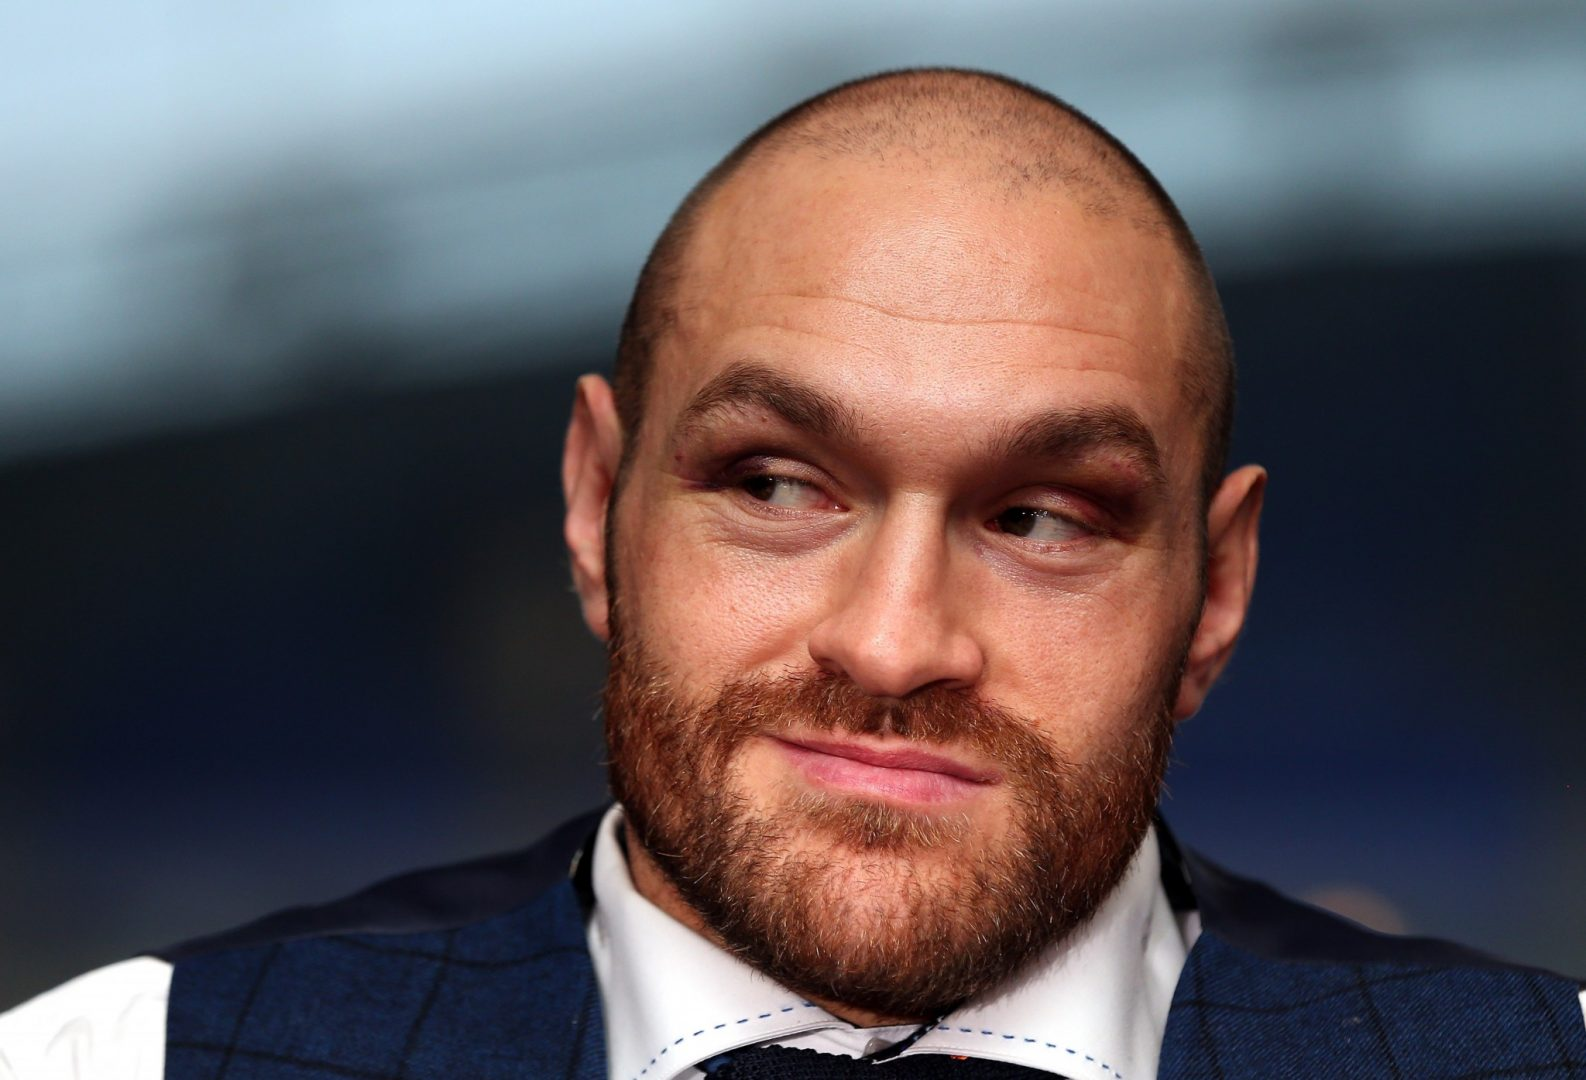 Tyson Fury has been accused of homophobia